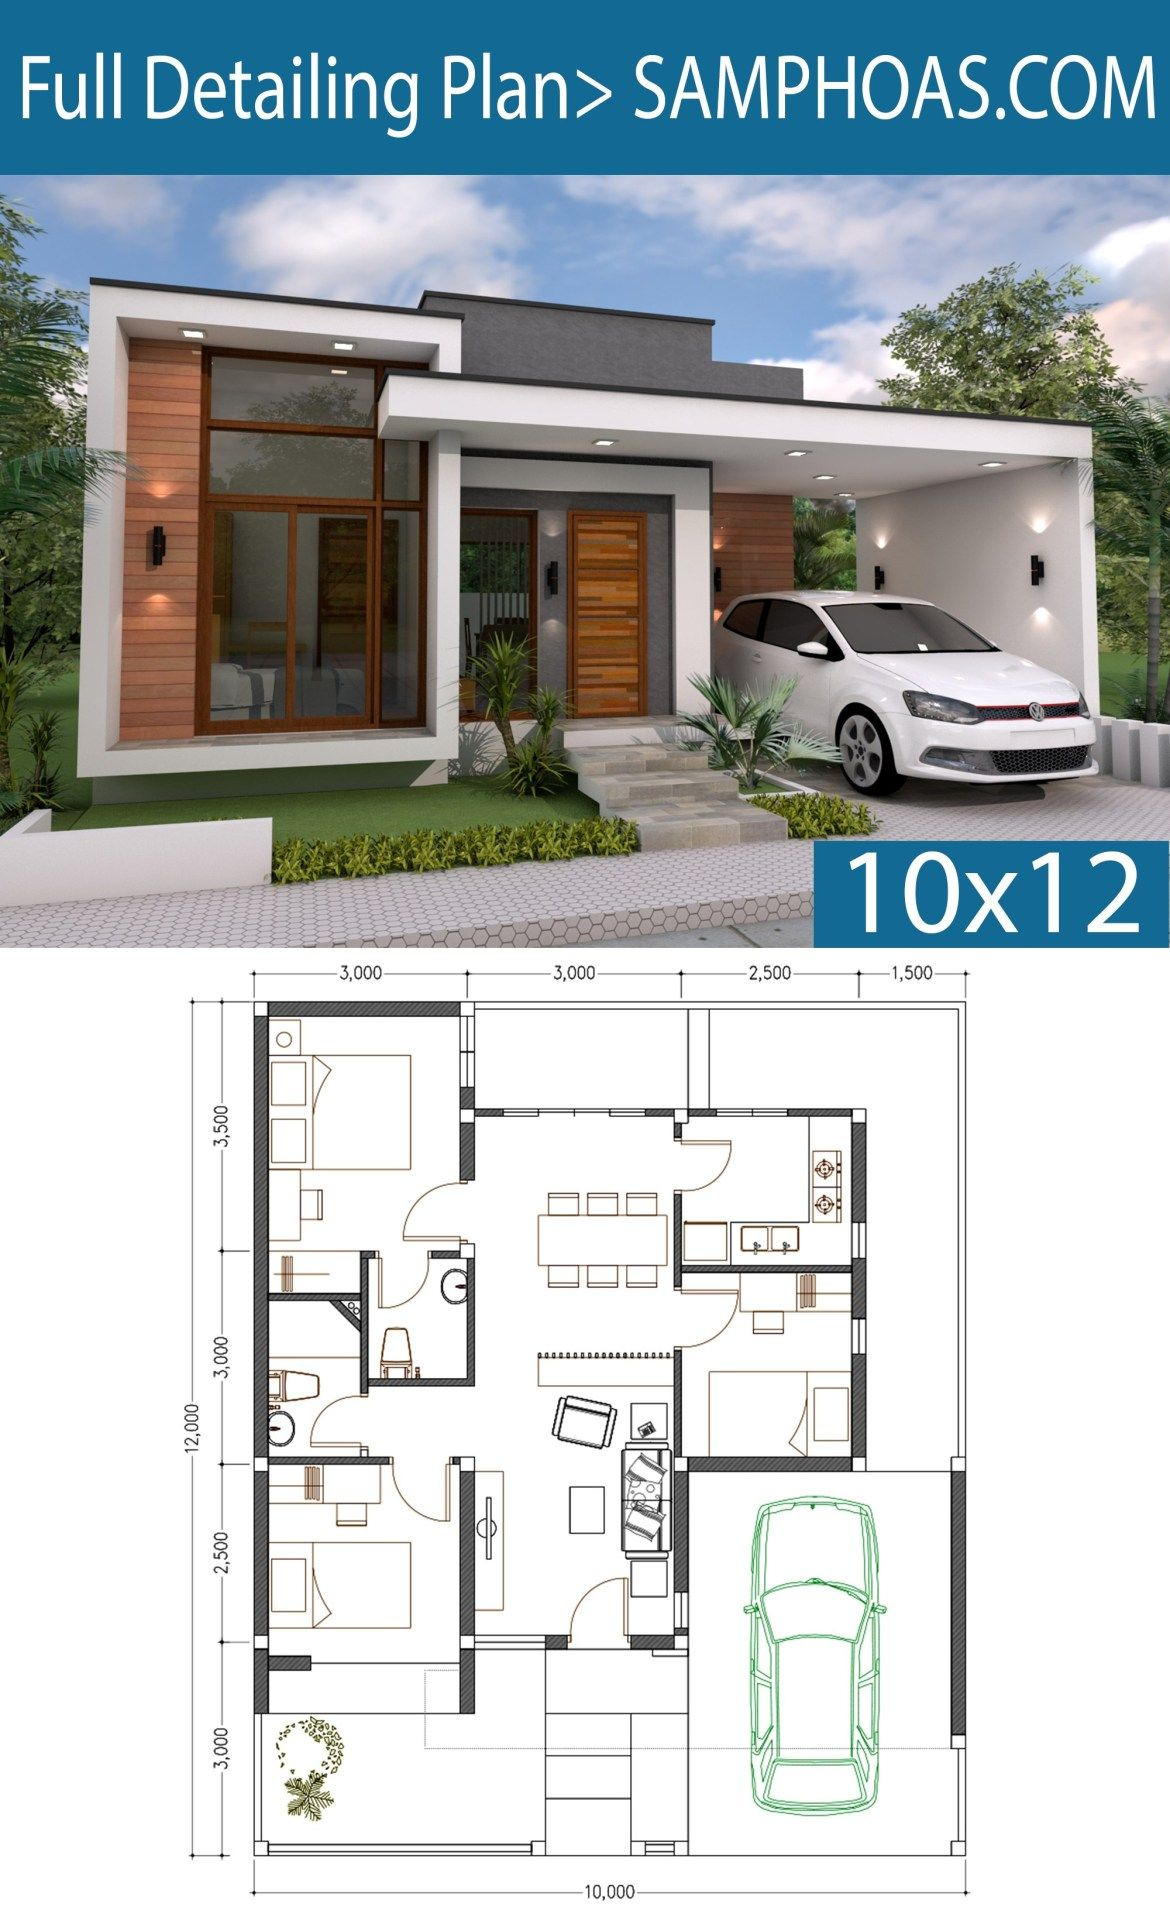 Two Bedroom House Plan Designs Inspirational 3 Bedrooms Home Design Plan 10x12m